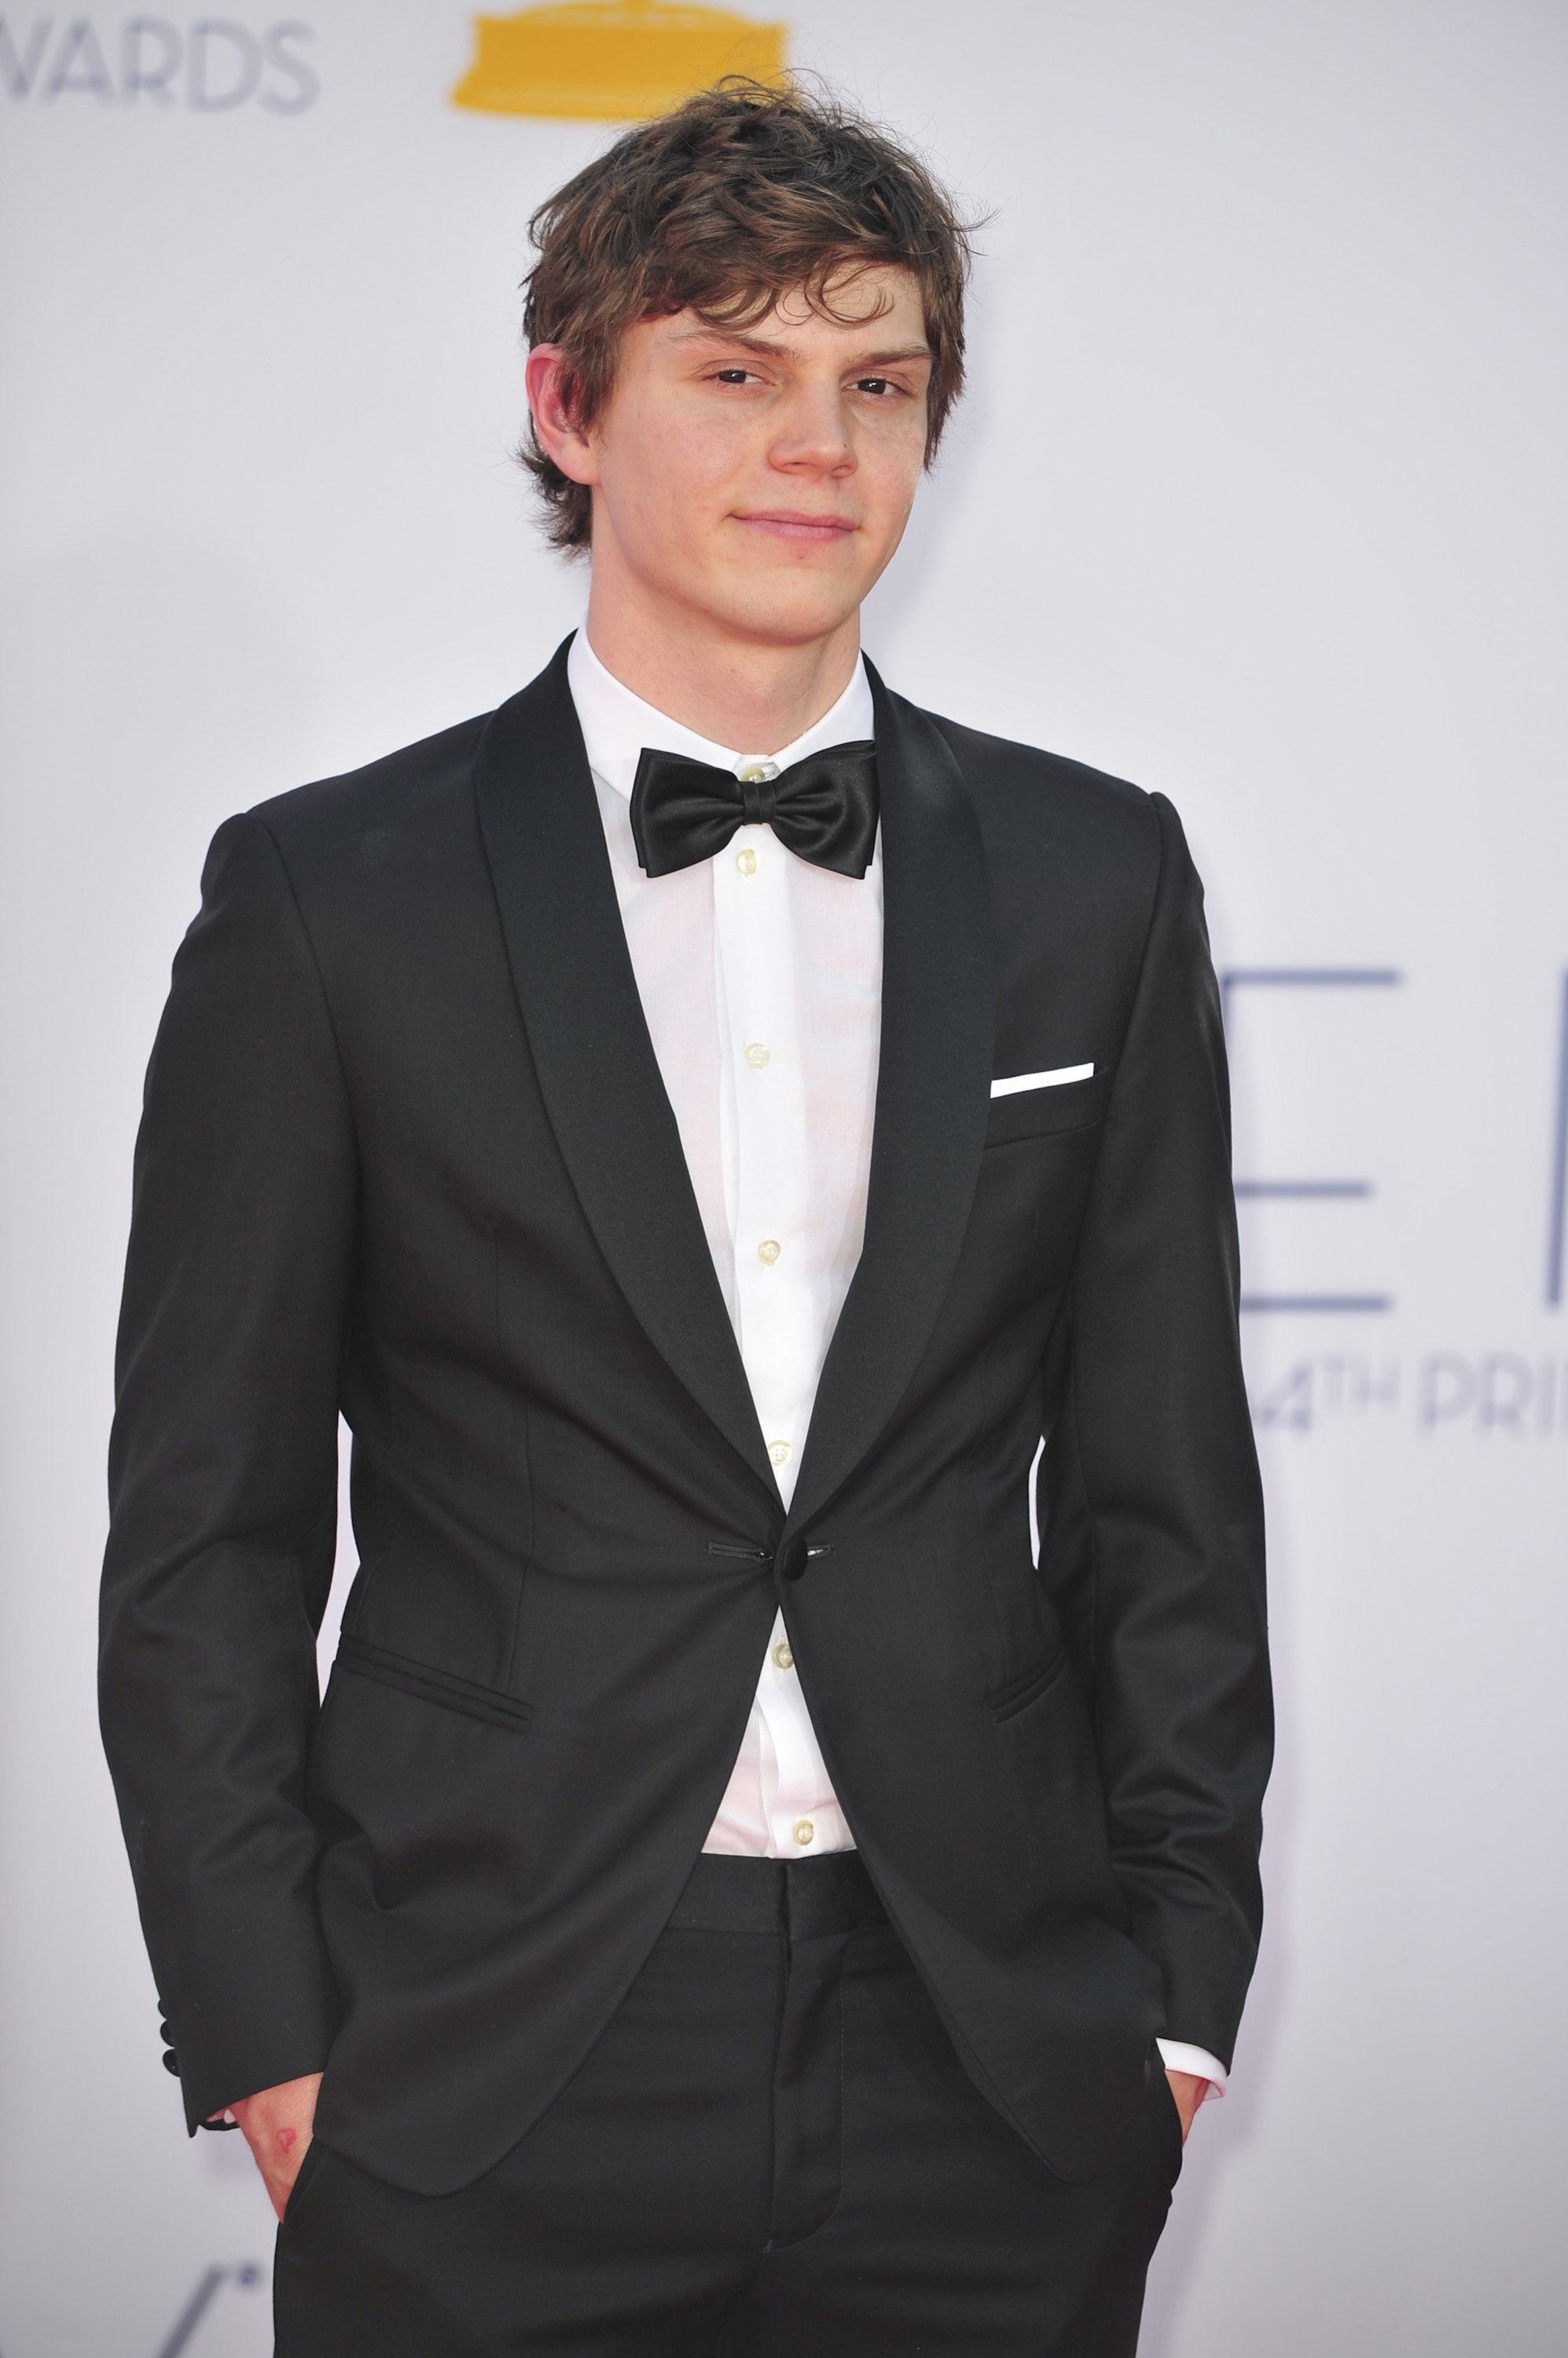 Evan Peters in a tux